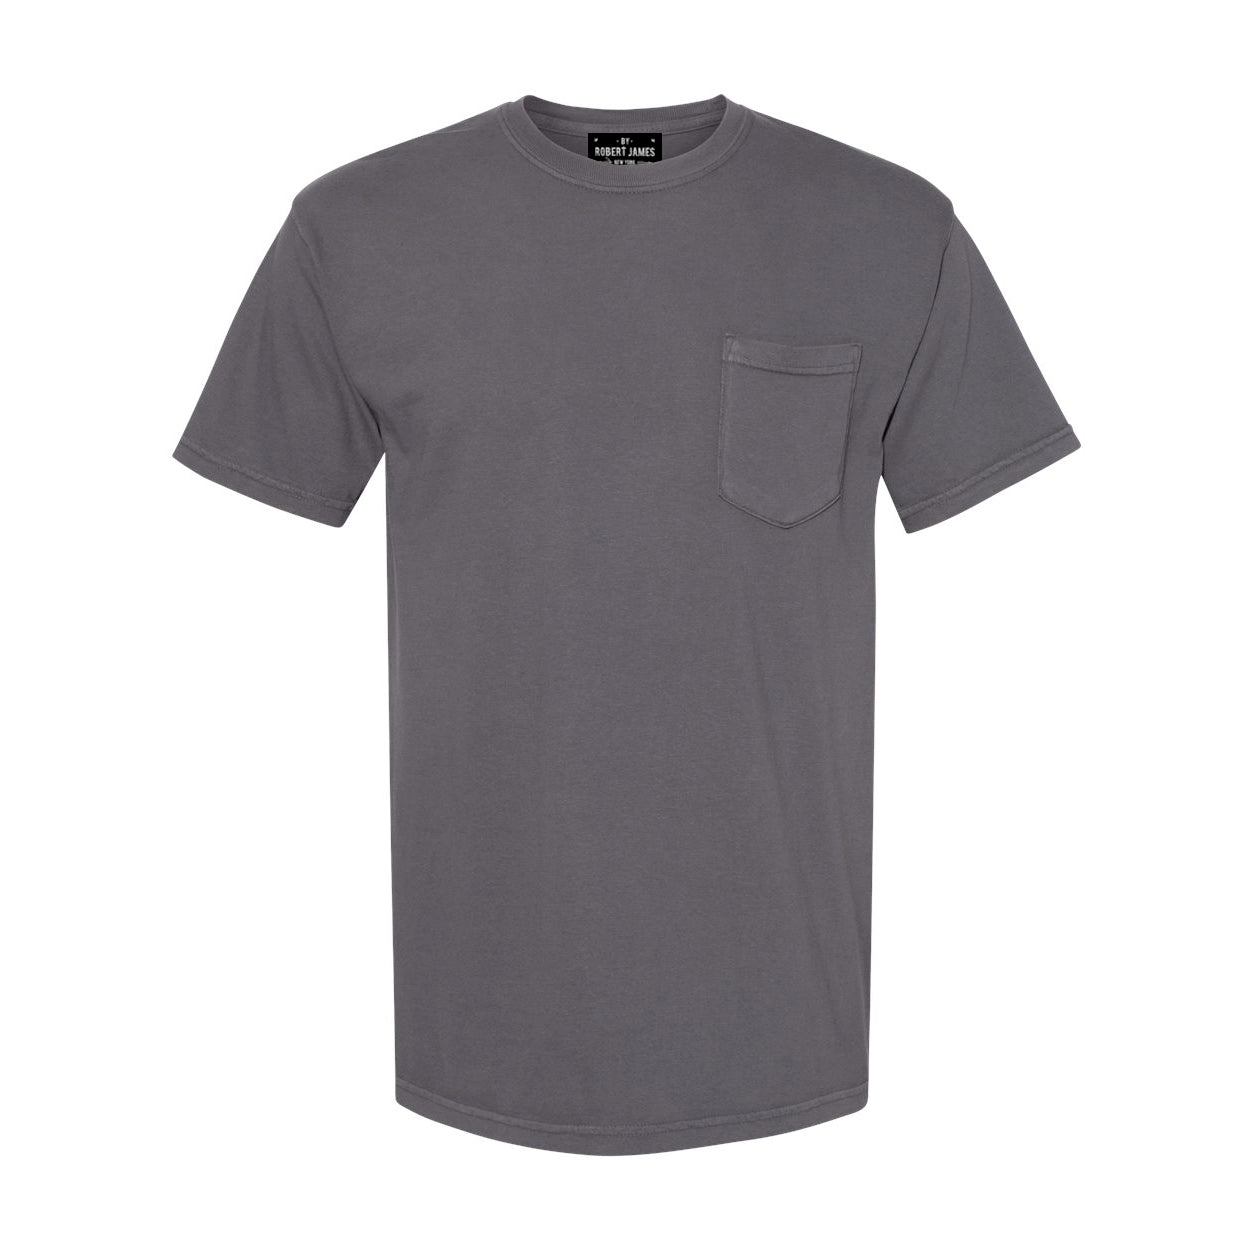 DAGGERS PIGMENT DYED POCKET TEE - GREASE RAG GRAY Men's Knit T-Shirt By Robert James